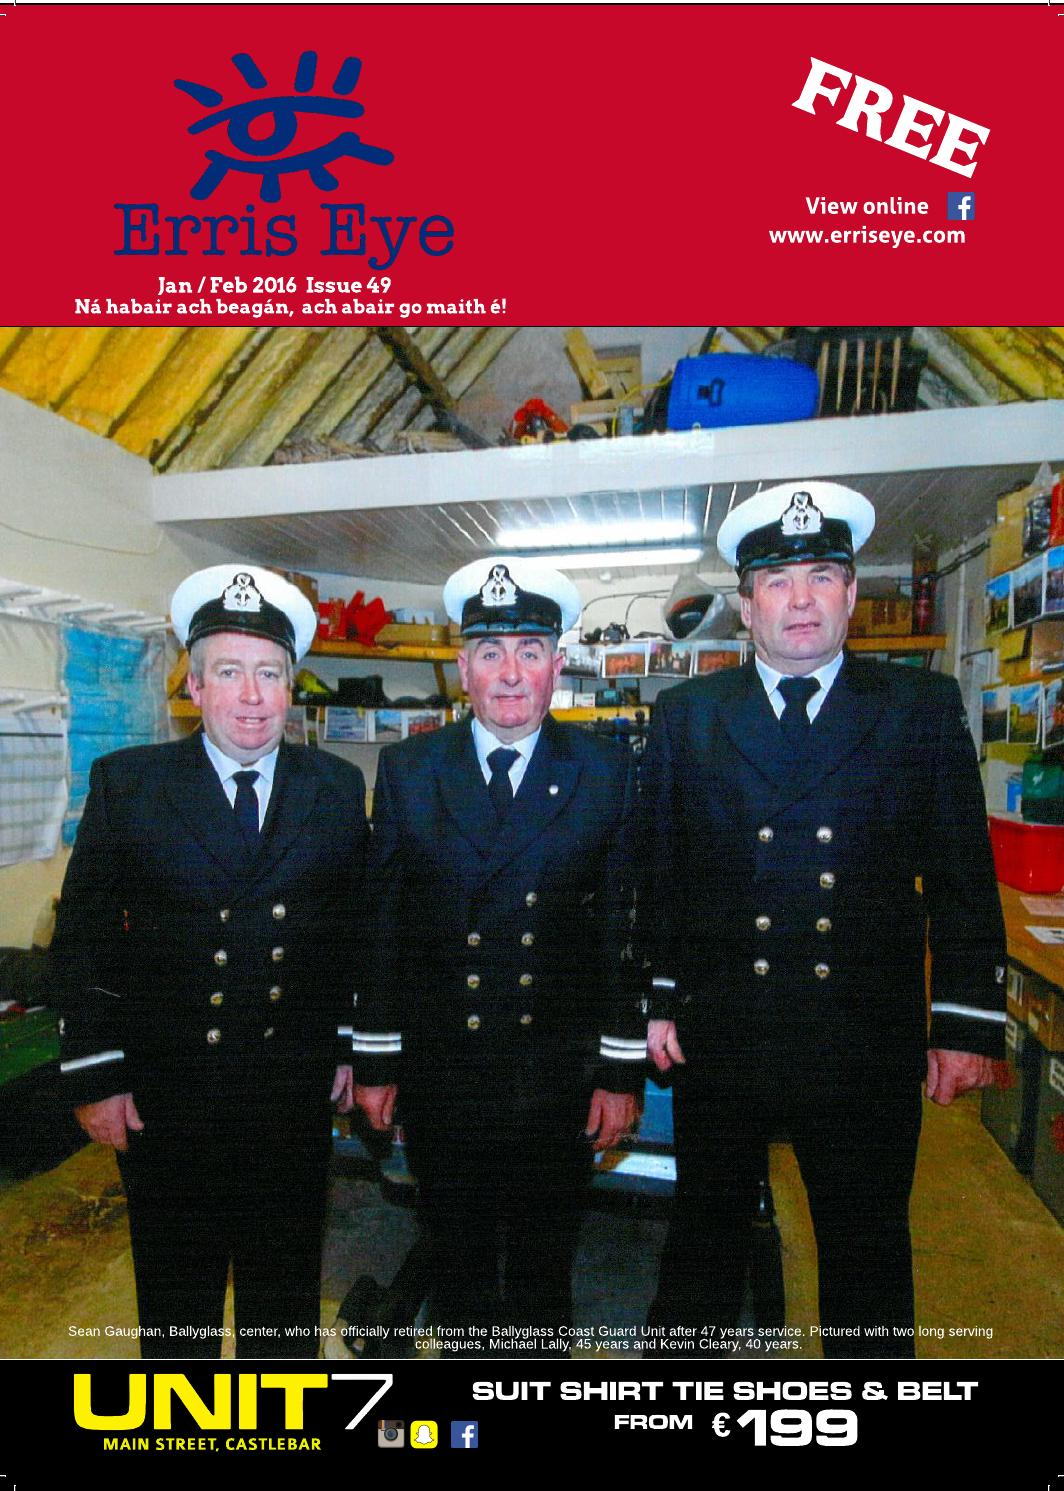 Mayo County Council Annual Report